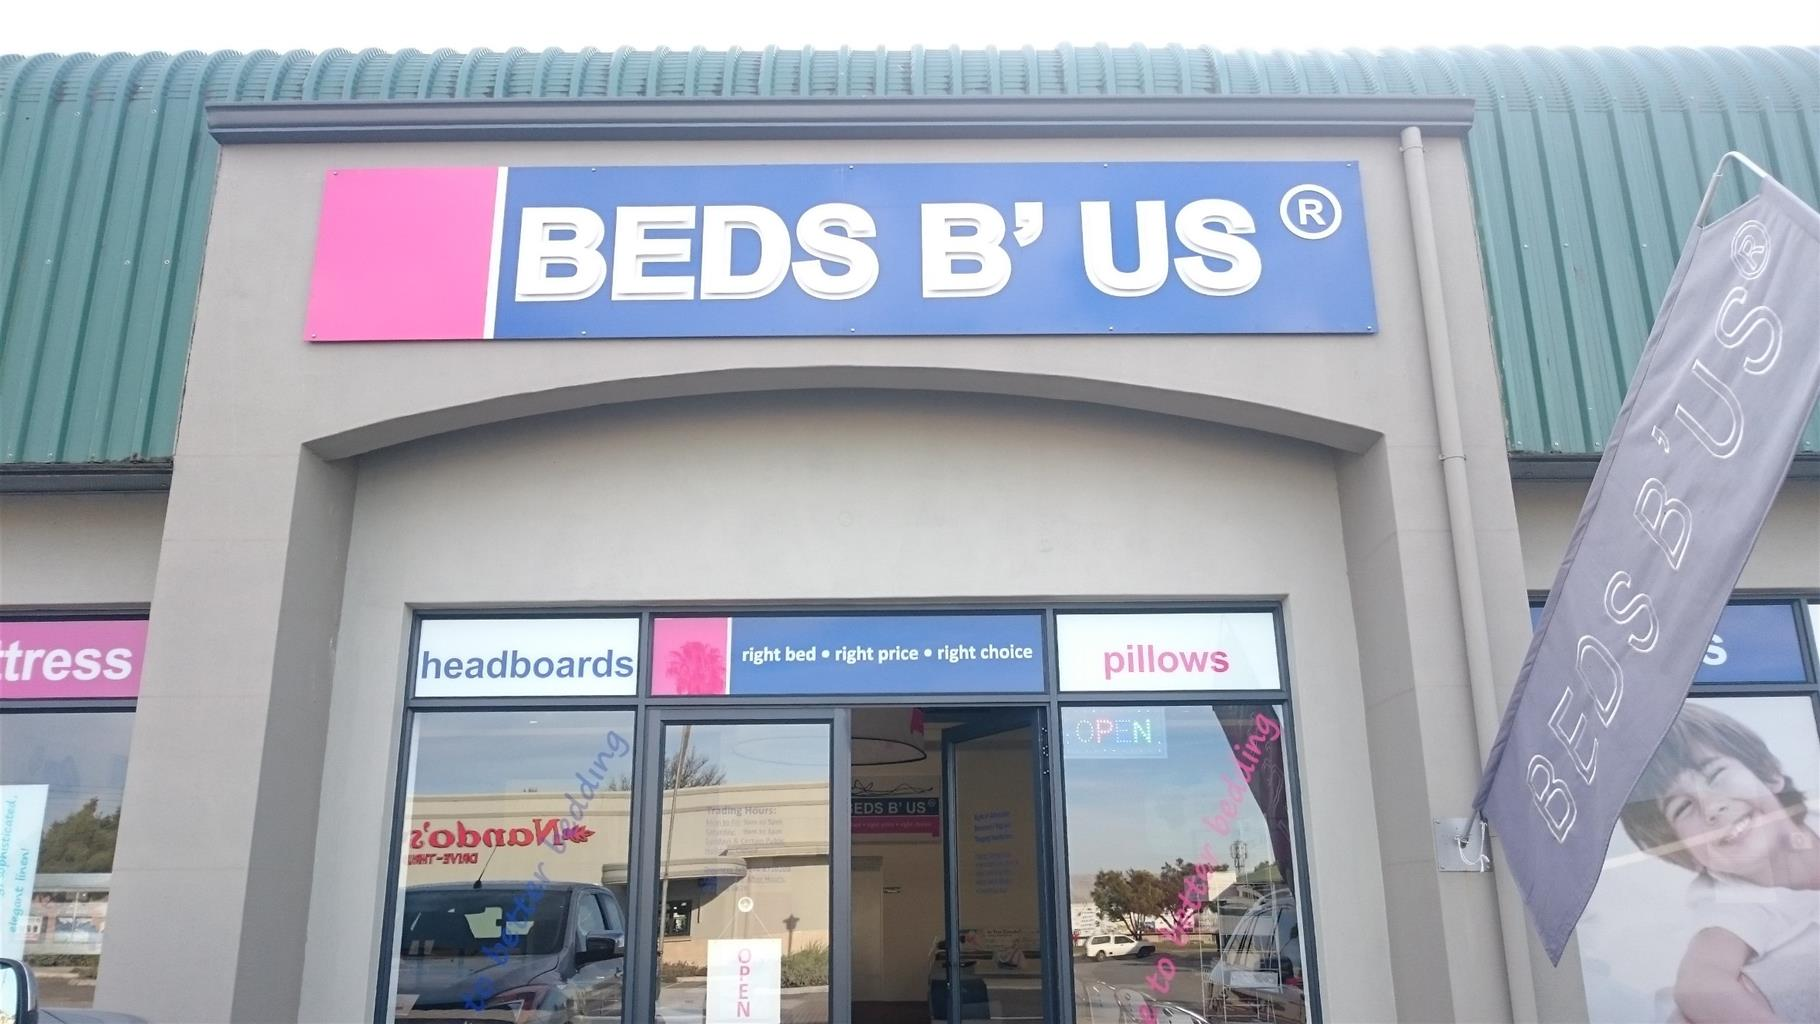 BEDS B' US Your Mattress & Bed Specialist Store (Garden Route)